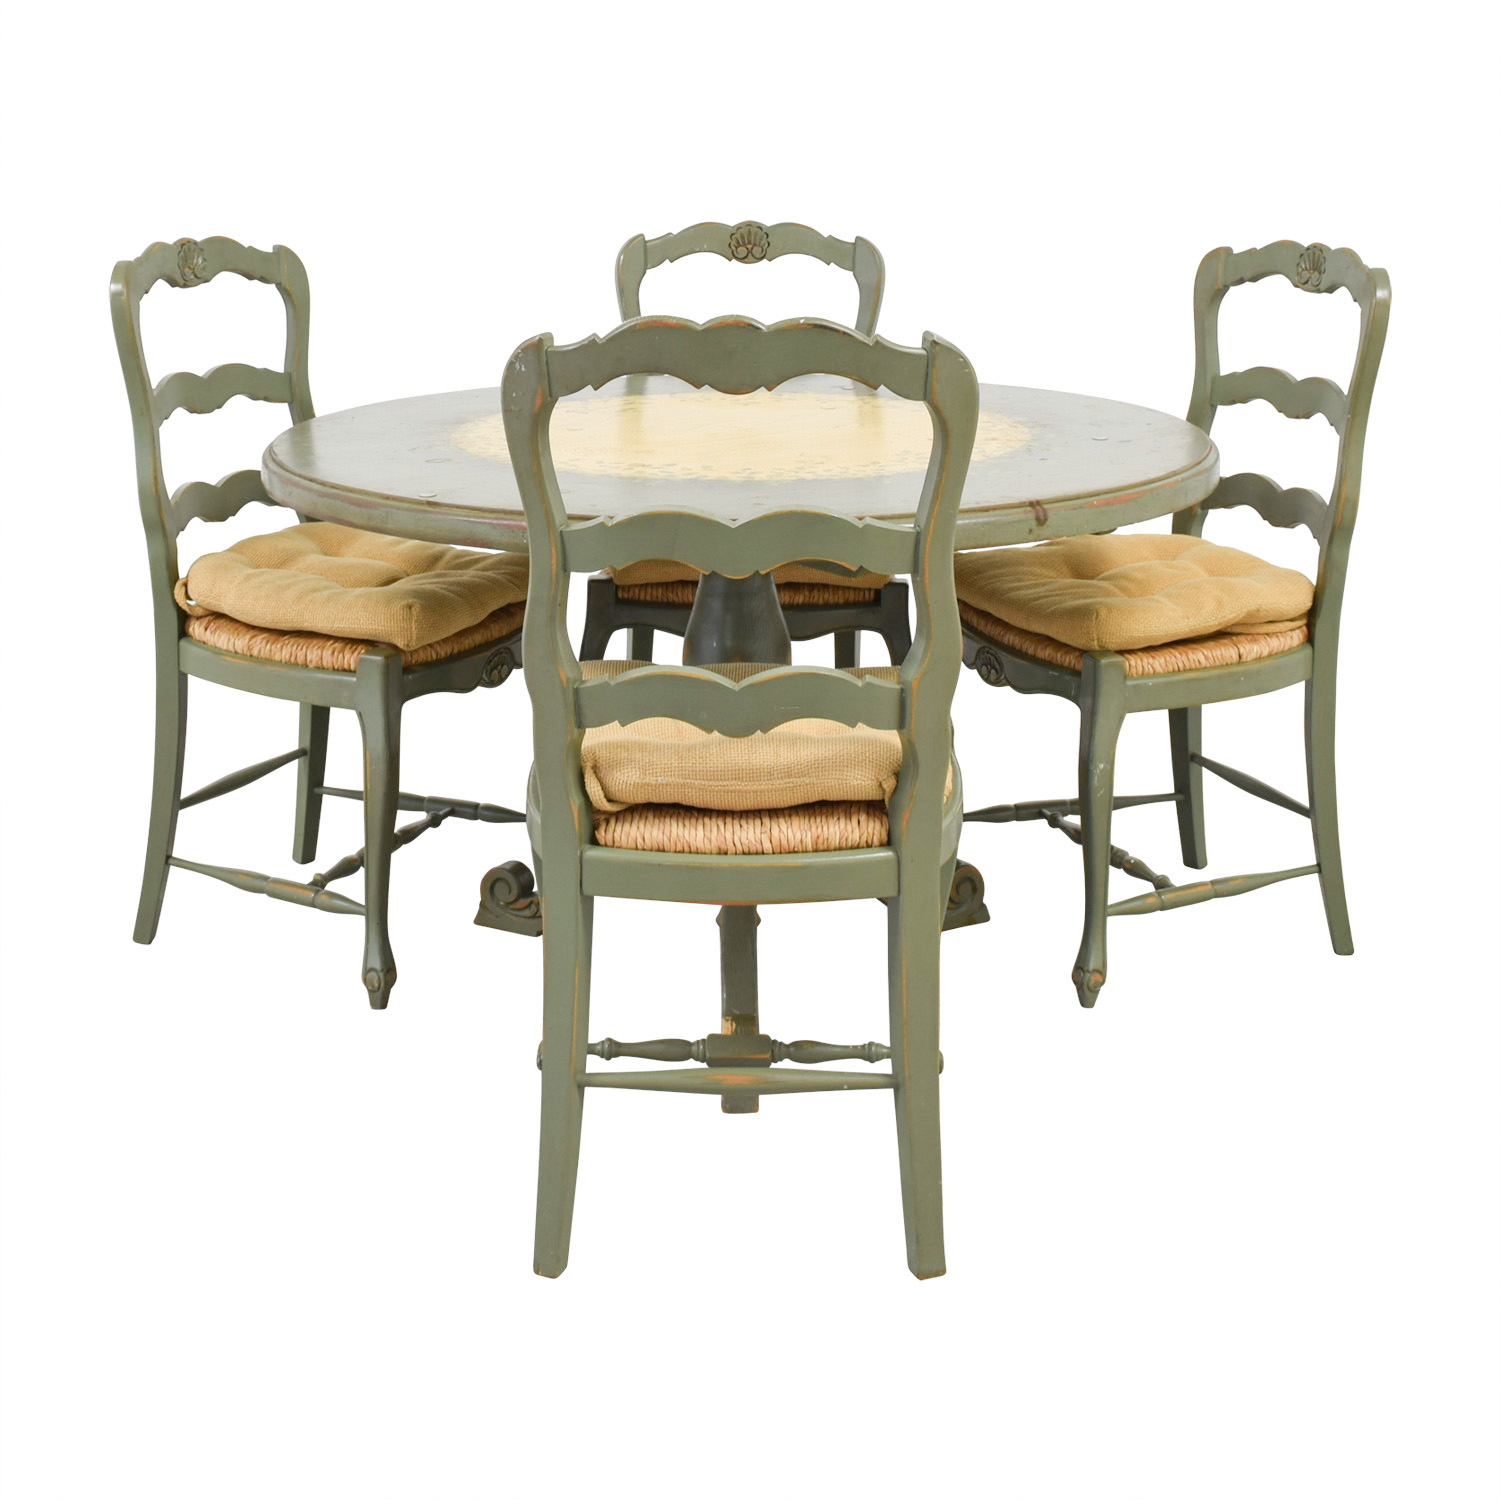 Hand Painted Country Style Kitchen Table and Chairs for sale